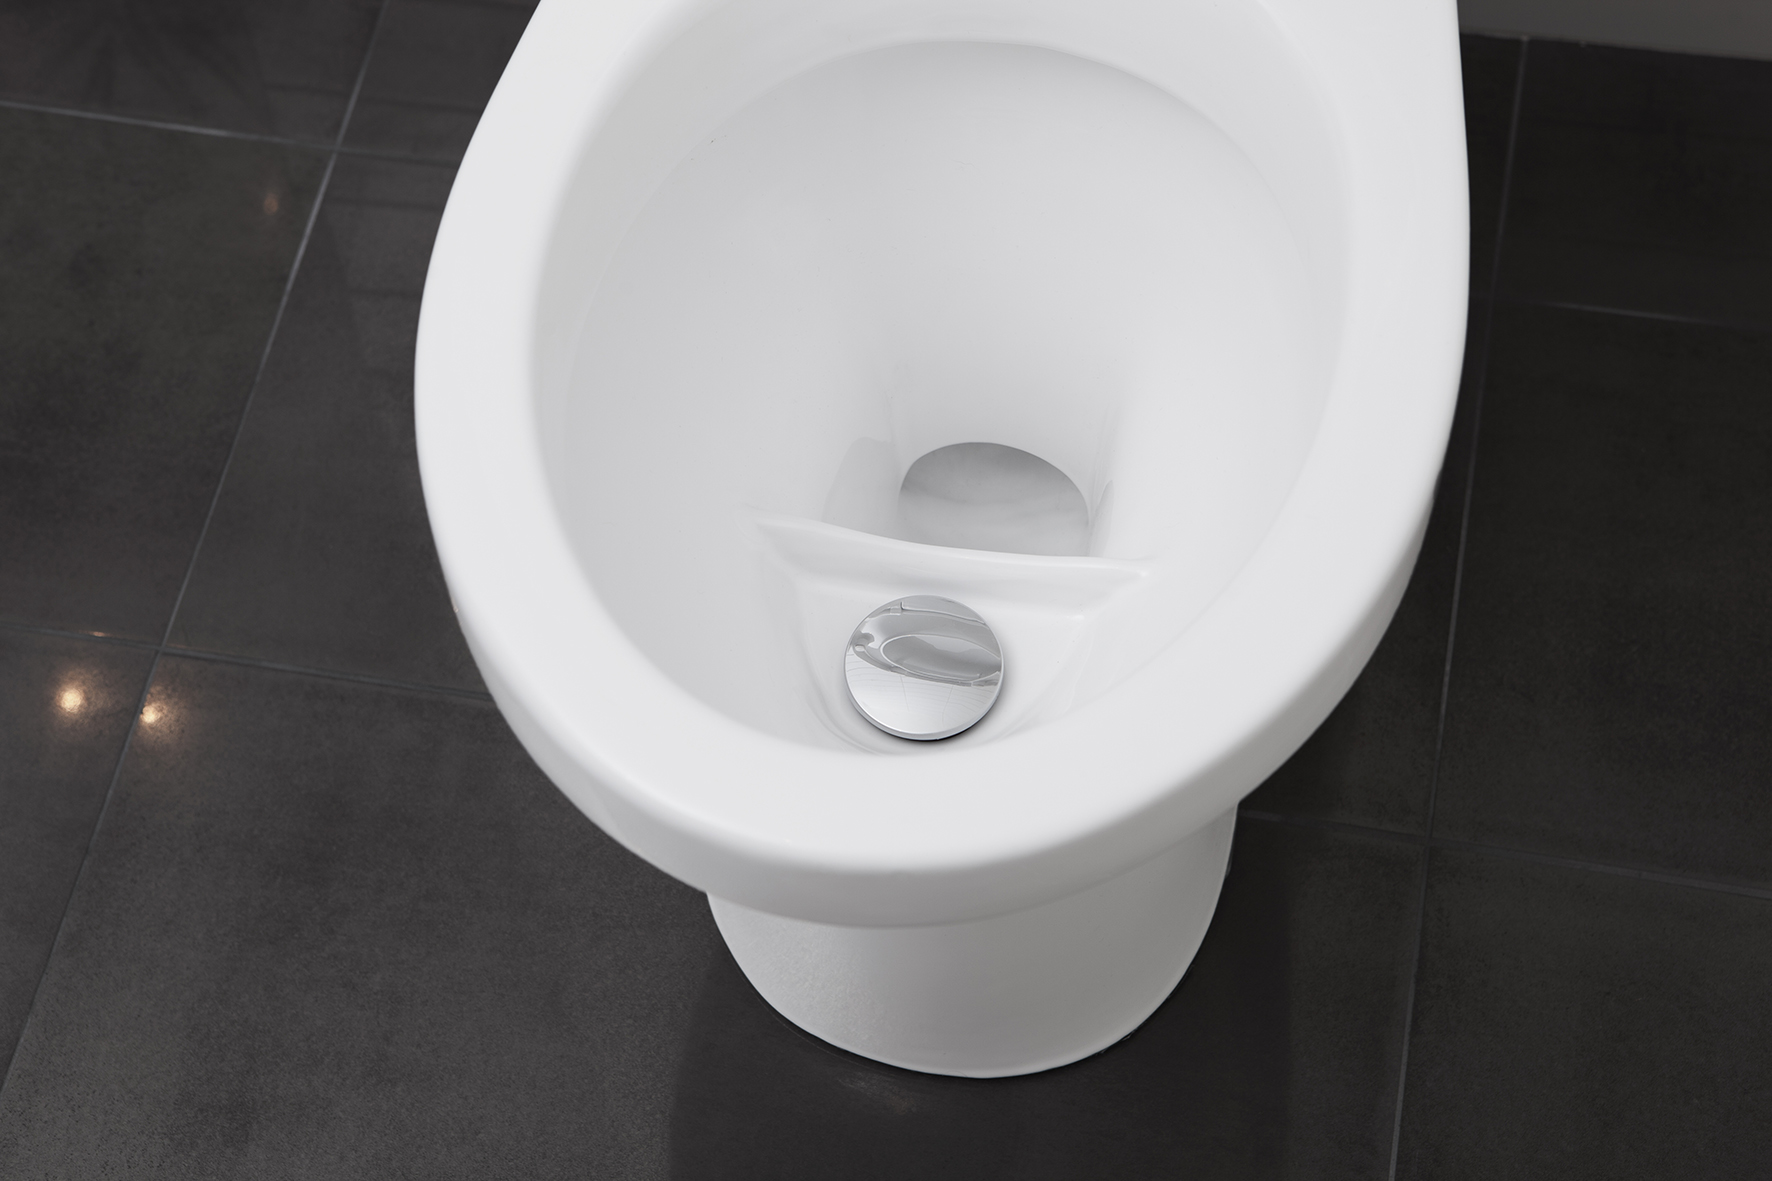 EcoFlush - Ultra-low-flush toilet below 1 liter in average per flush. - EcoFlush is the bestseller that flushes between 0.7 to 0.9 liter per flush (0,25 gal) on average and saves huge amounts of water and economy for villas, property owners, industrial complexes, hotels and eco projects. An incredibly and revolutionary low-flow toilet that saves hundreds of liters against other so-called